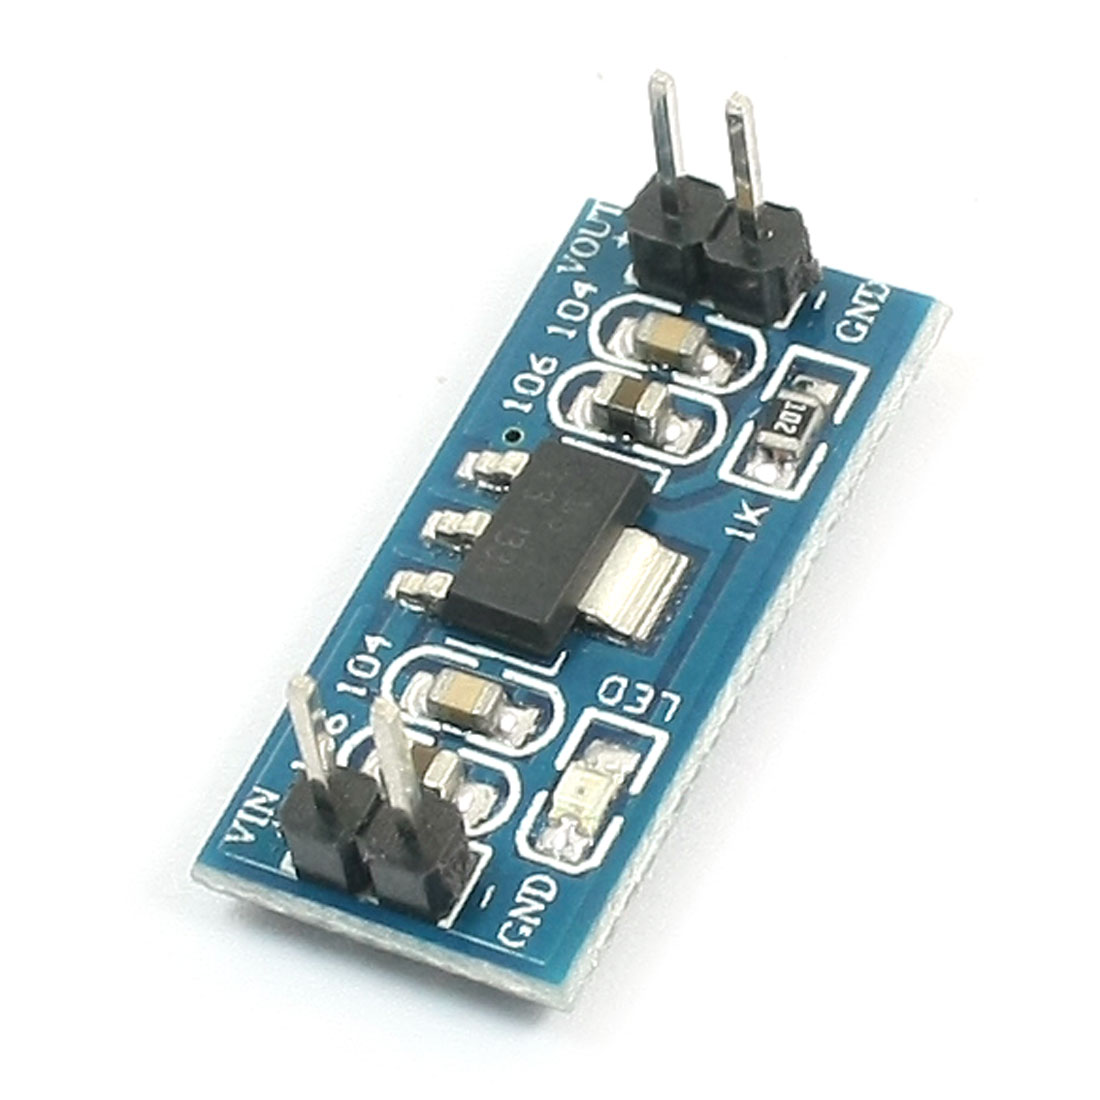 AMS1117-3.3 DC Step-Down Voltage Regulator Adapter Convertor 3.3V Out